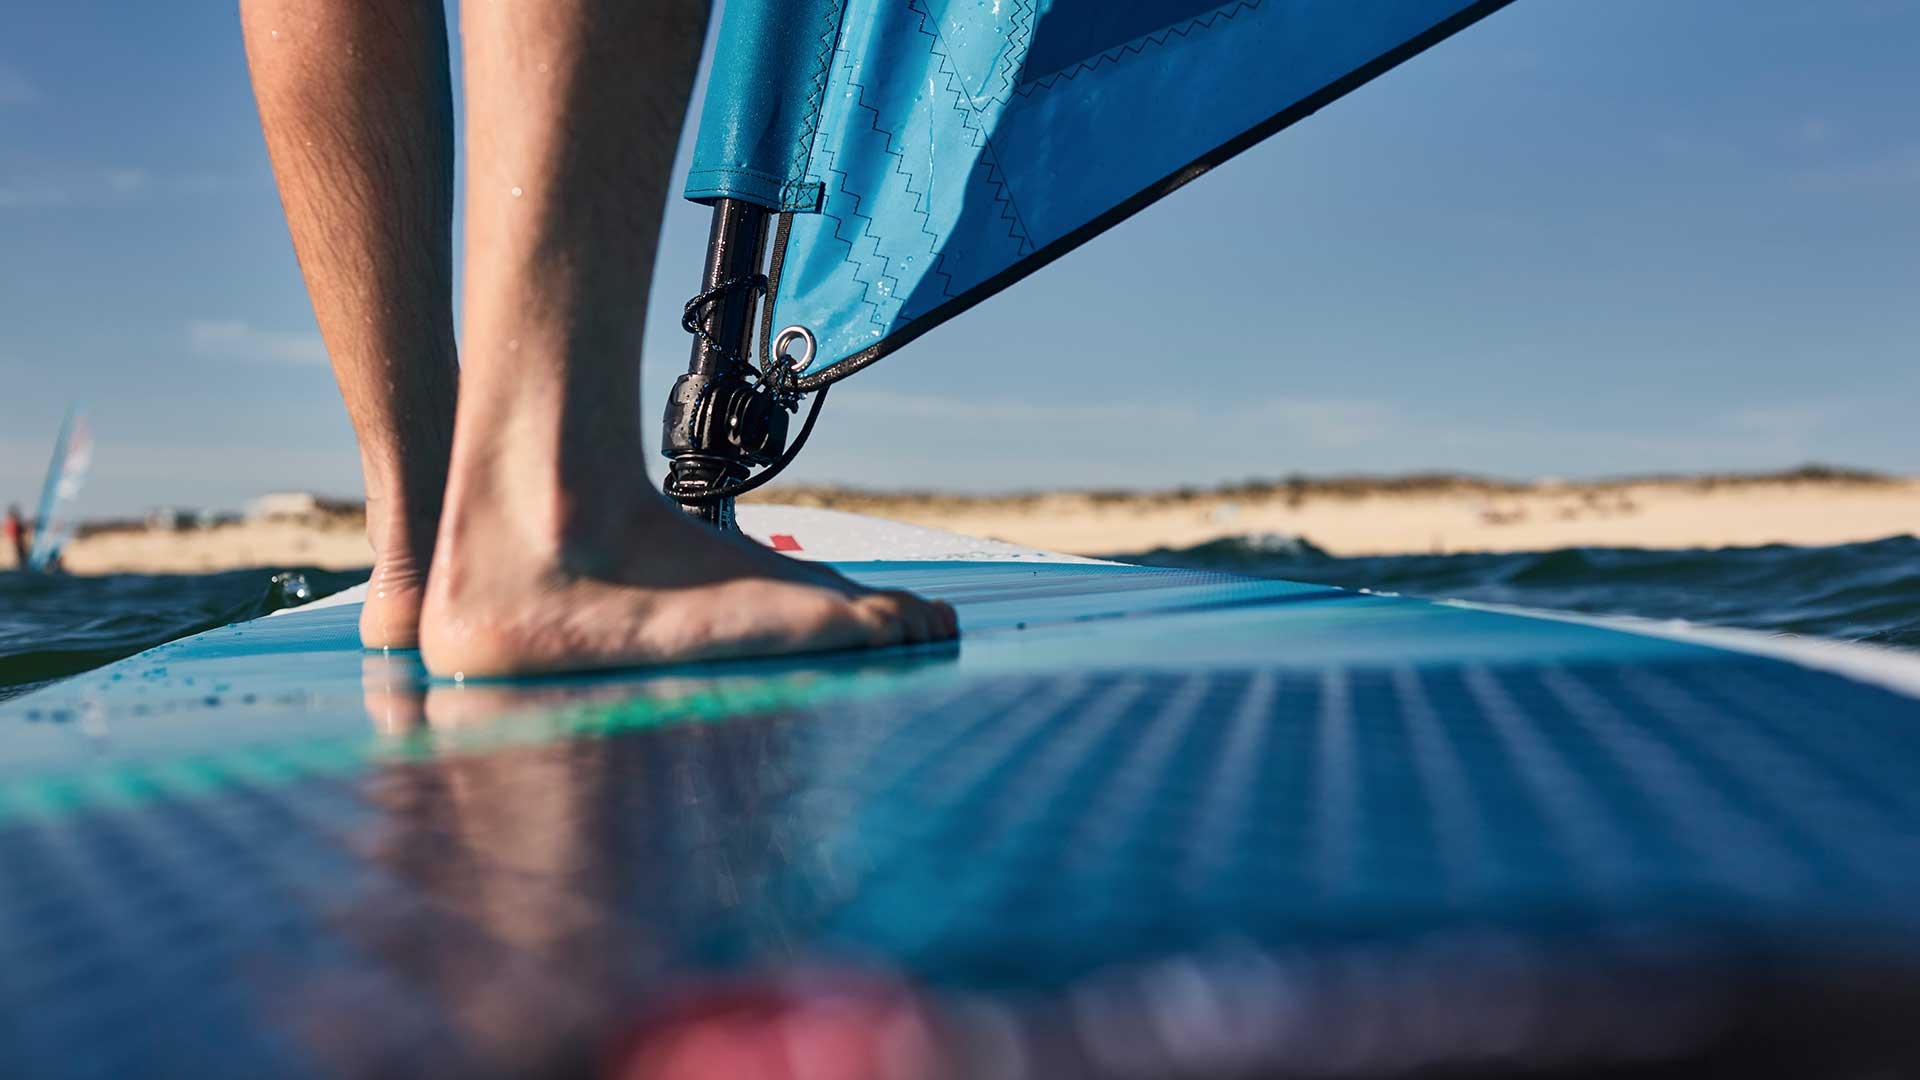 redpaddleco-107-wind-inflatable-paddle-board-desktop-gallery-deckpad